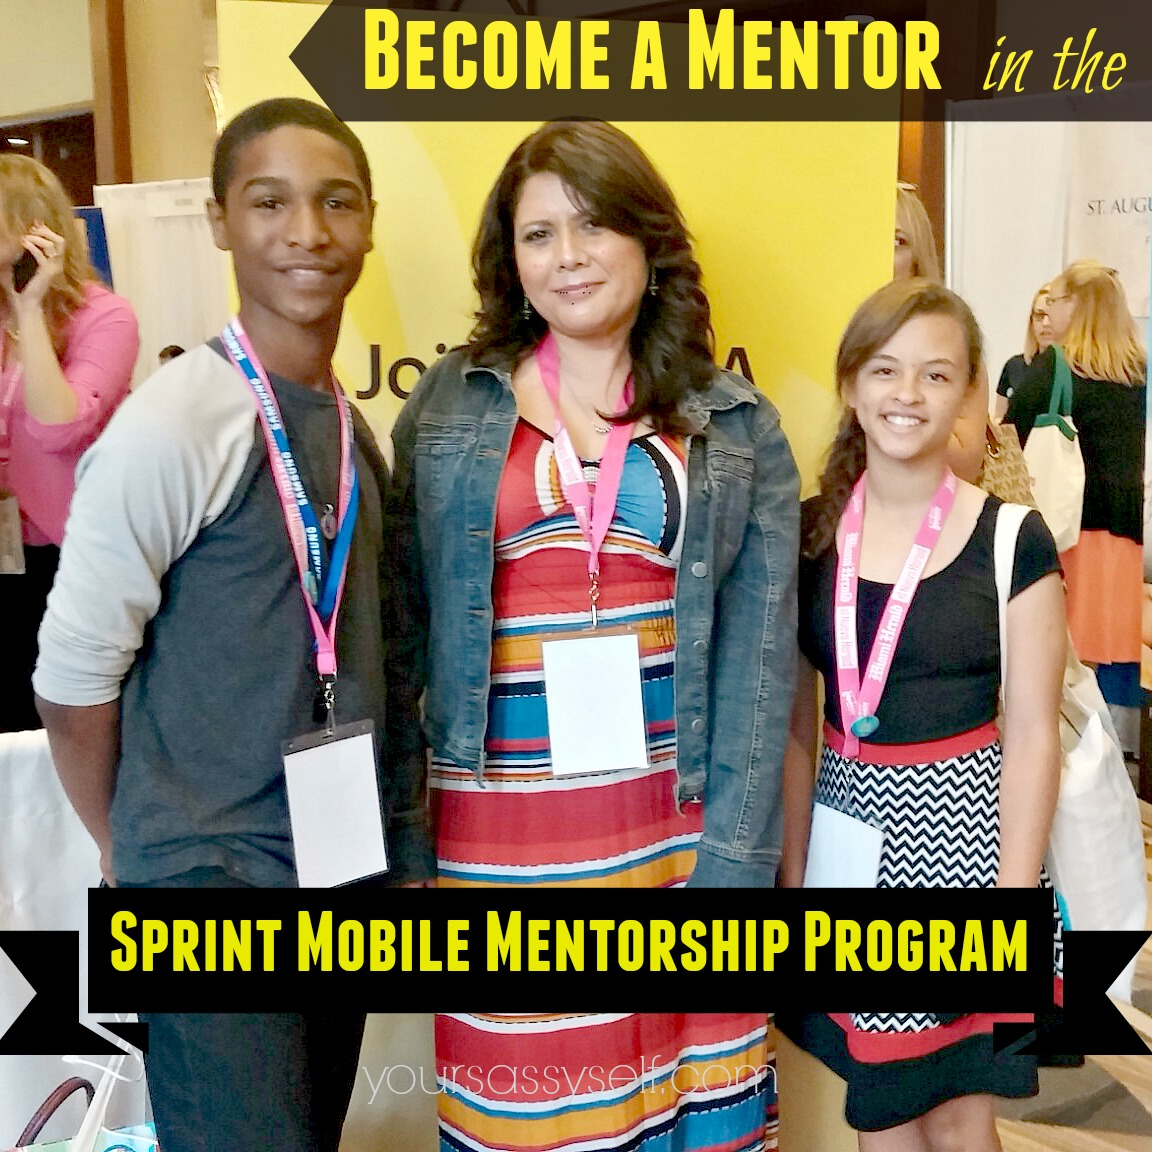 Become a Mentor in the Sprint Mobile Mentorship Program